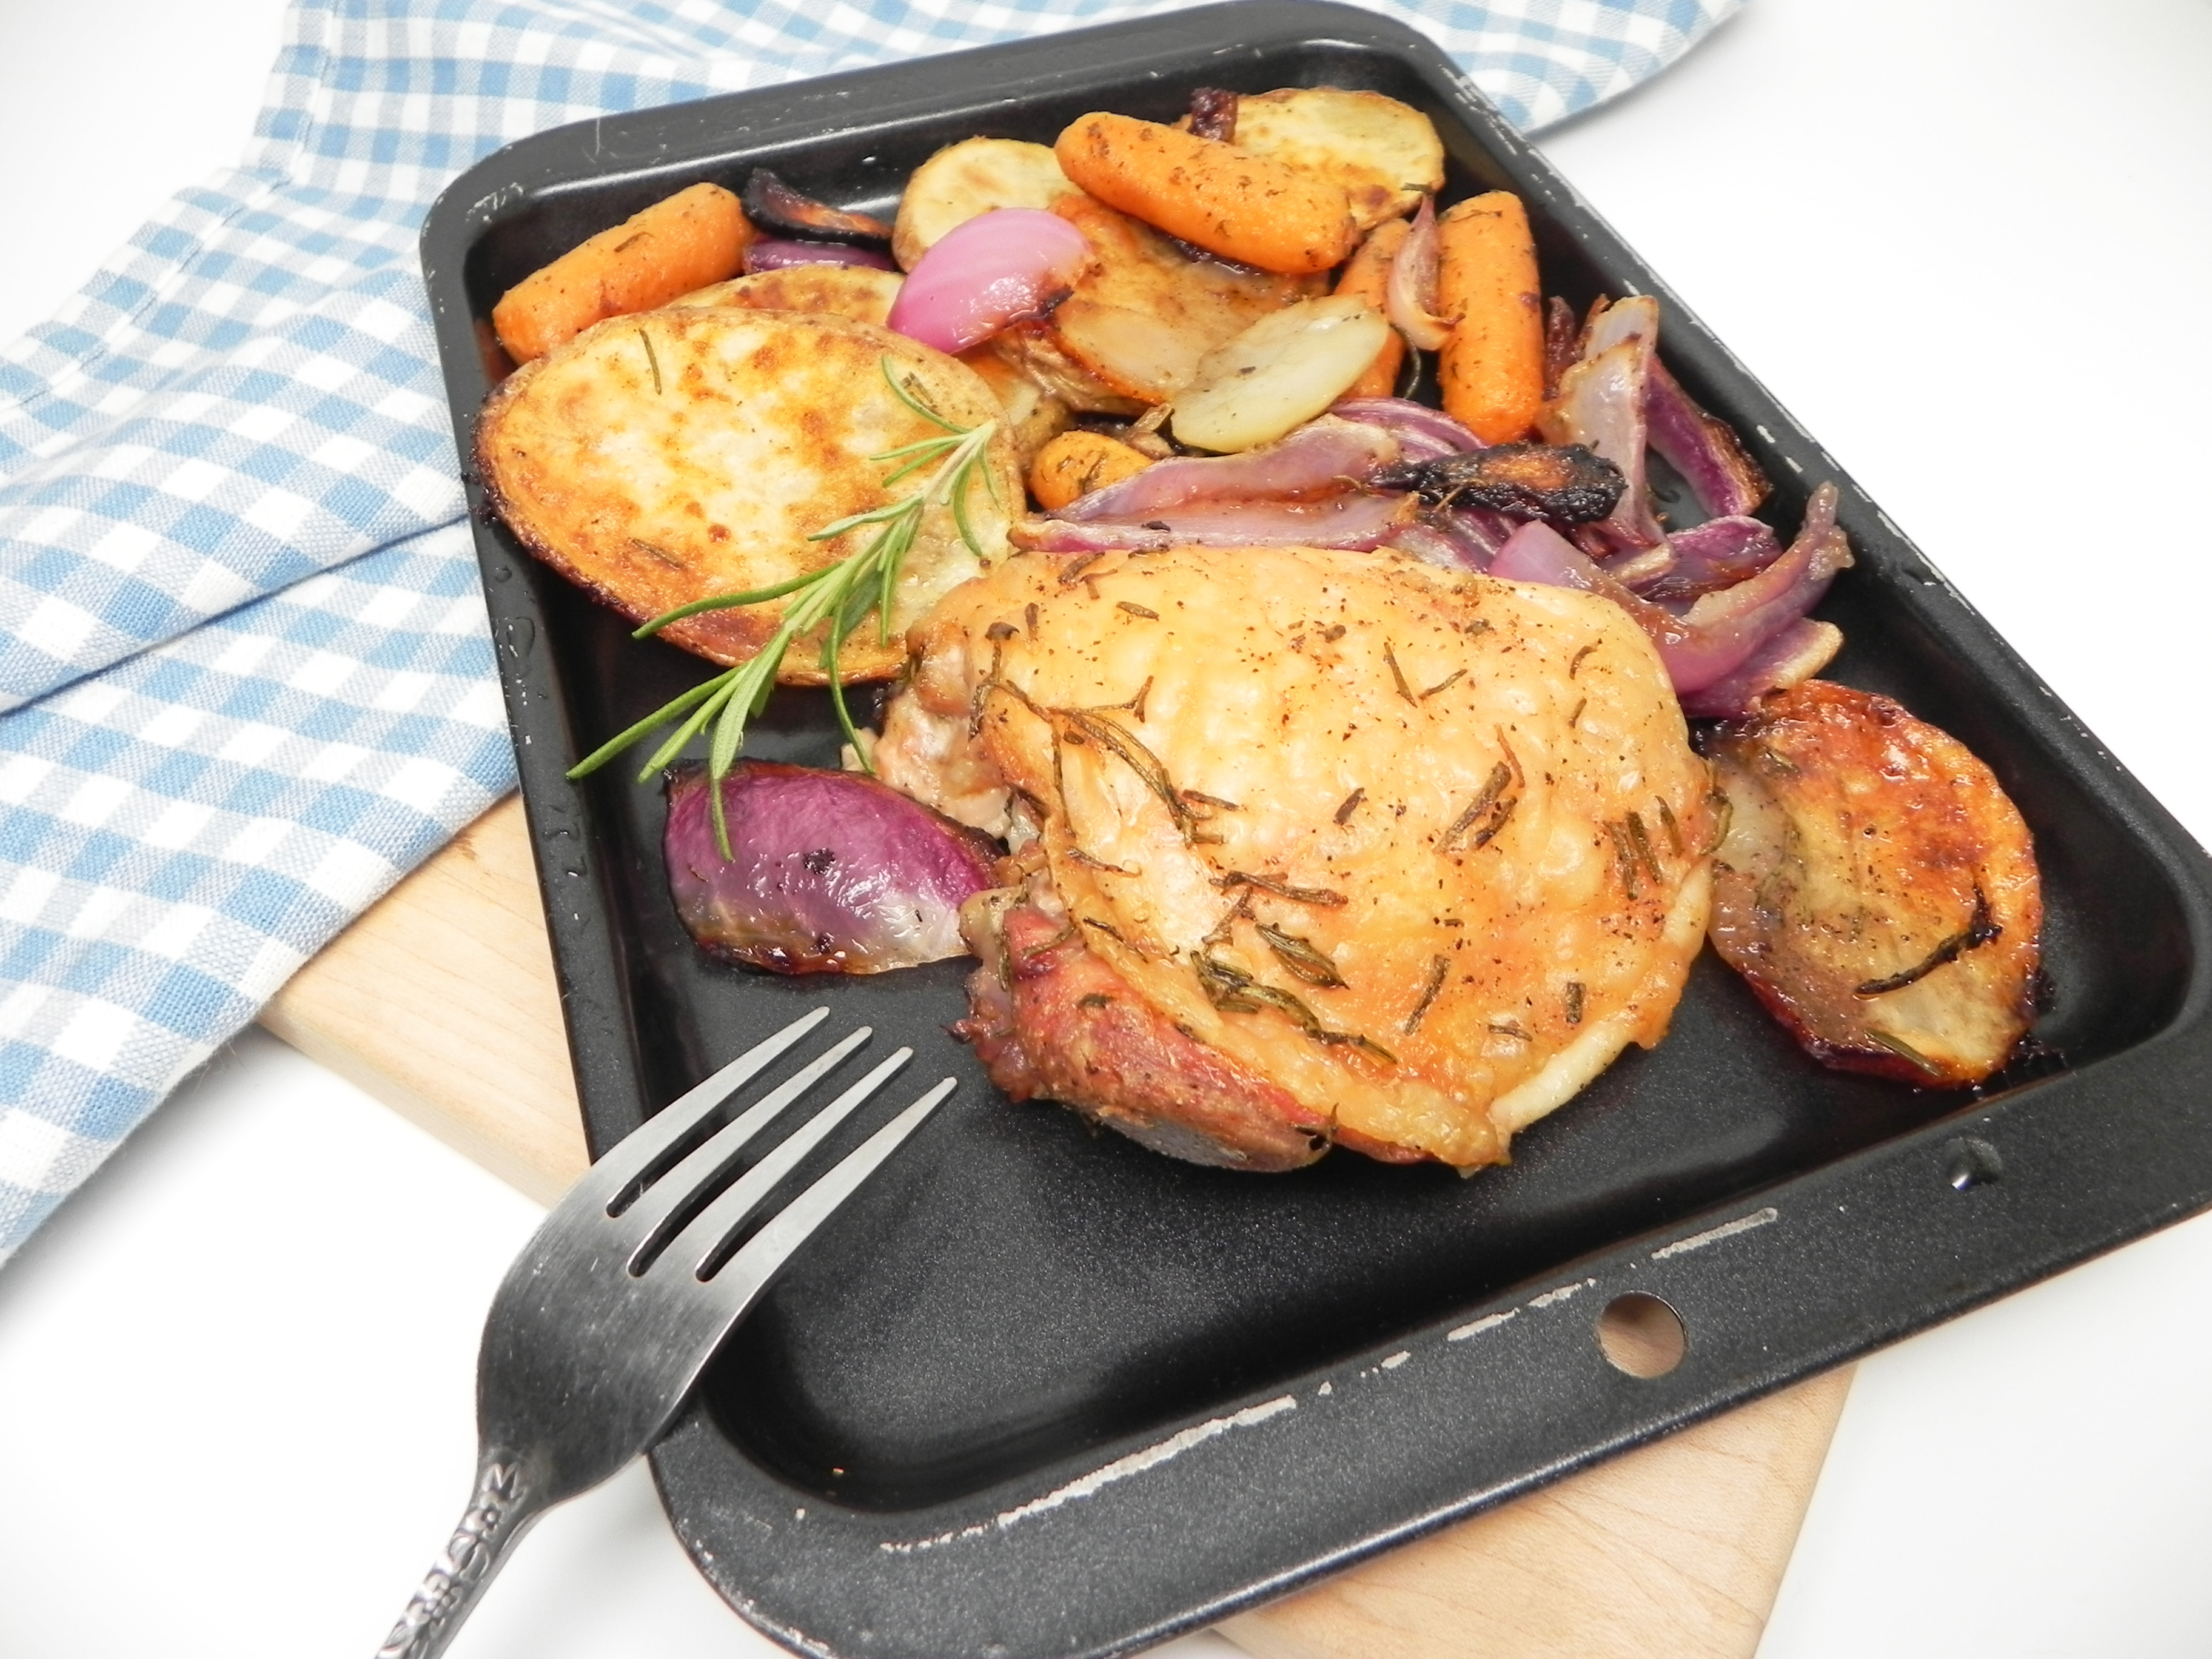 Chicken thighs roast to perfection along with carrots, turnips, potato, garlic and onion. It's a hearty and comforting sheet pan meal for two that can easily be transformed to any season by using spring, summer, or fall veggies.